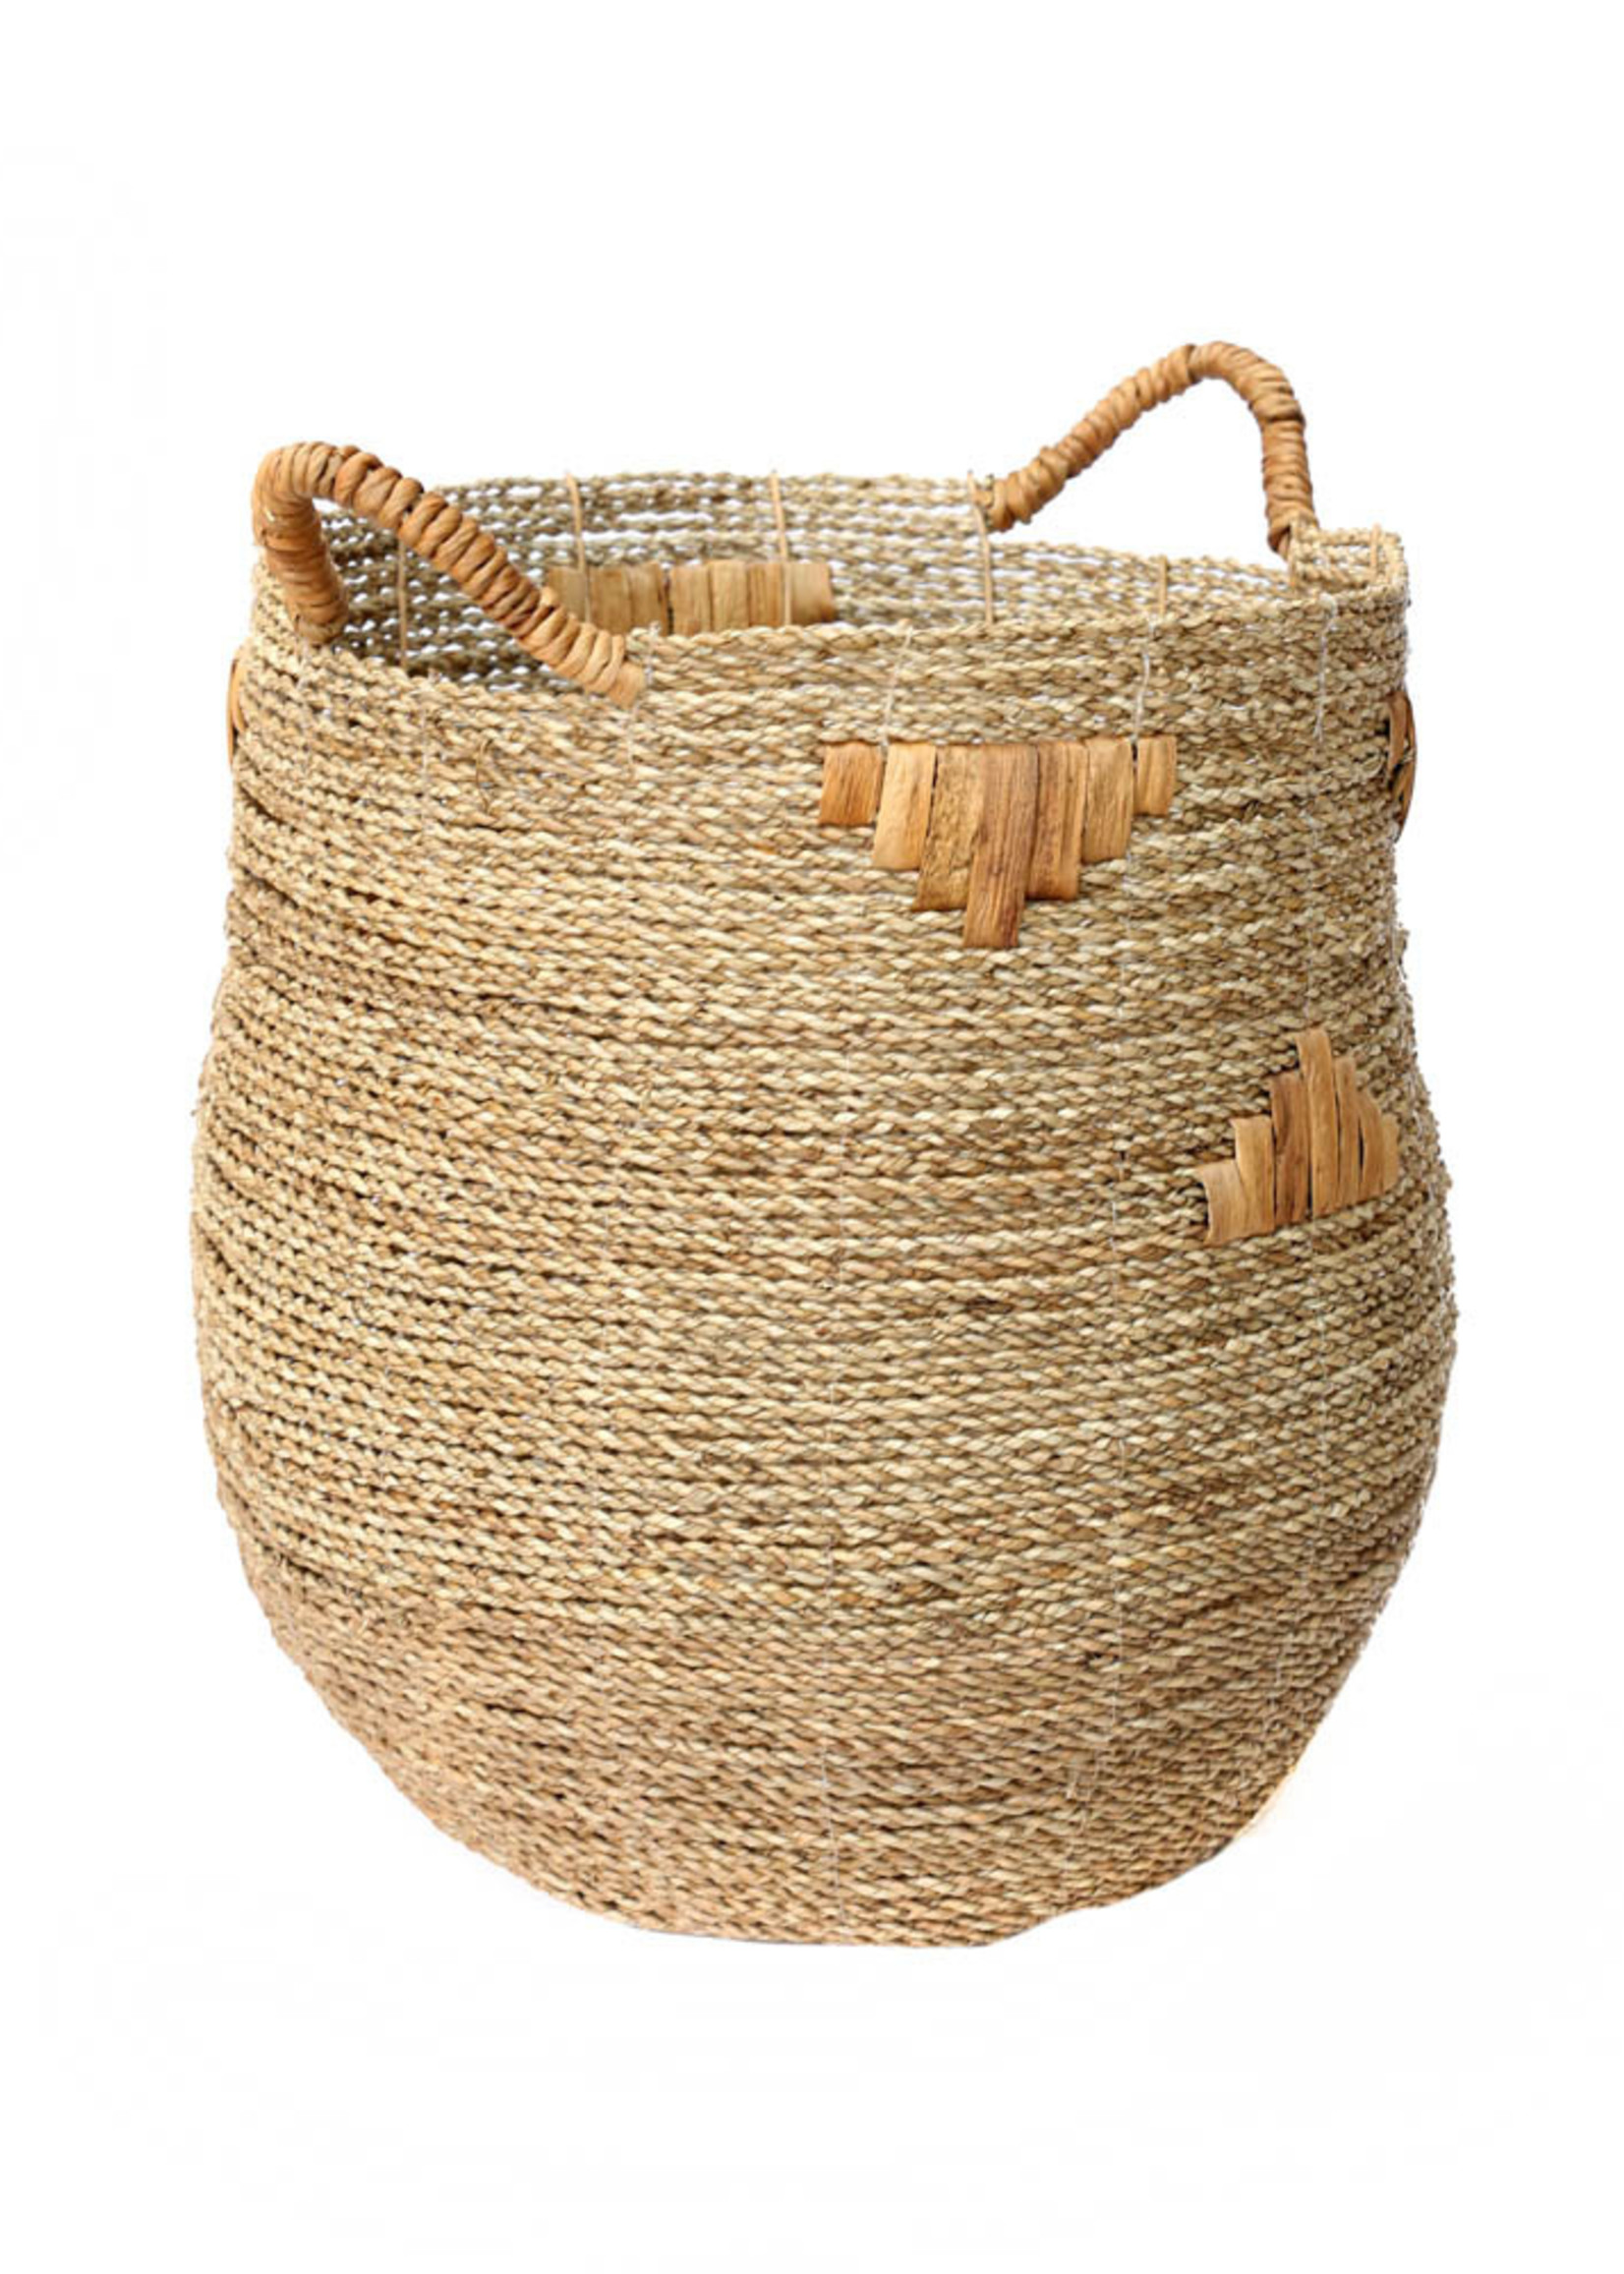 The Chubby Graphic Basket - Large